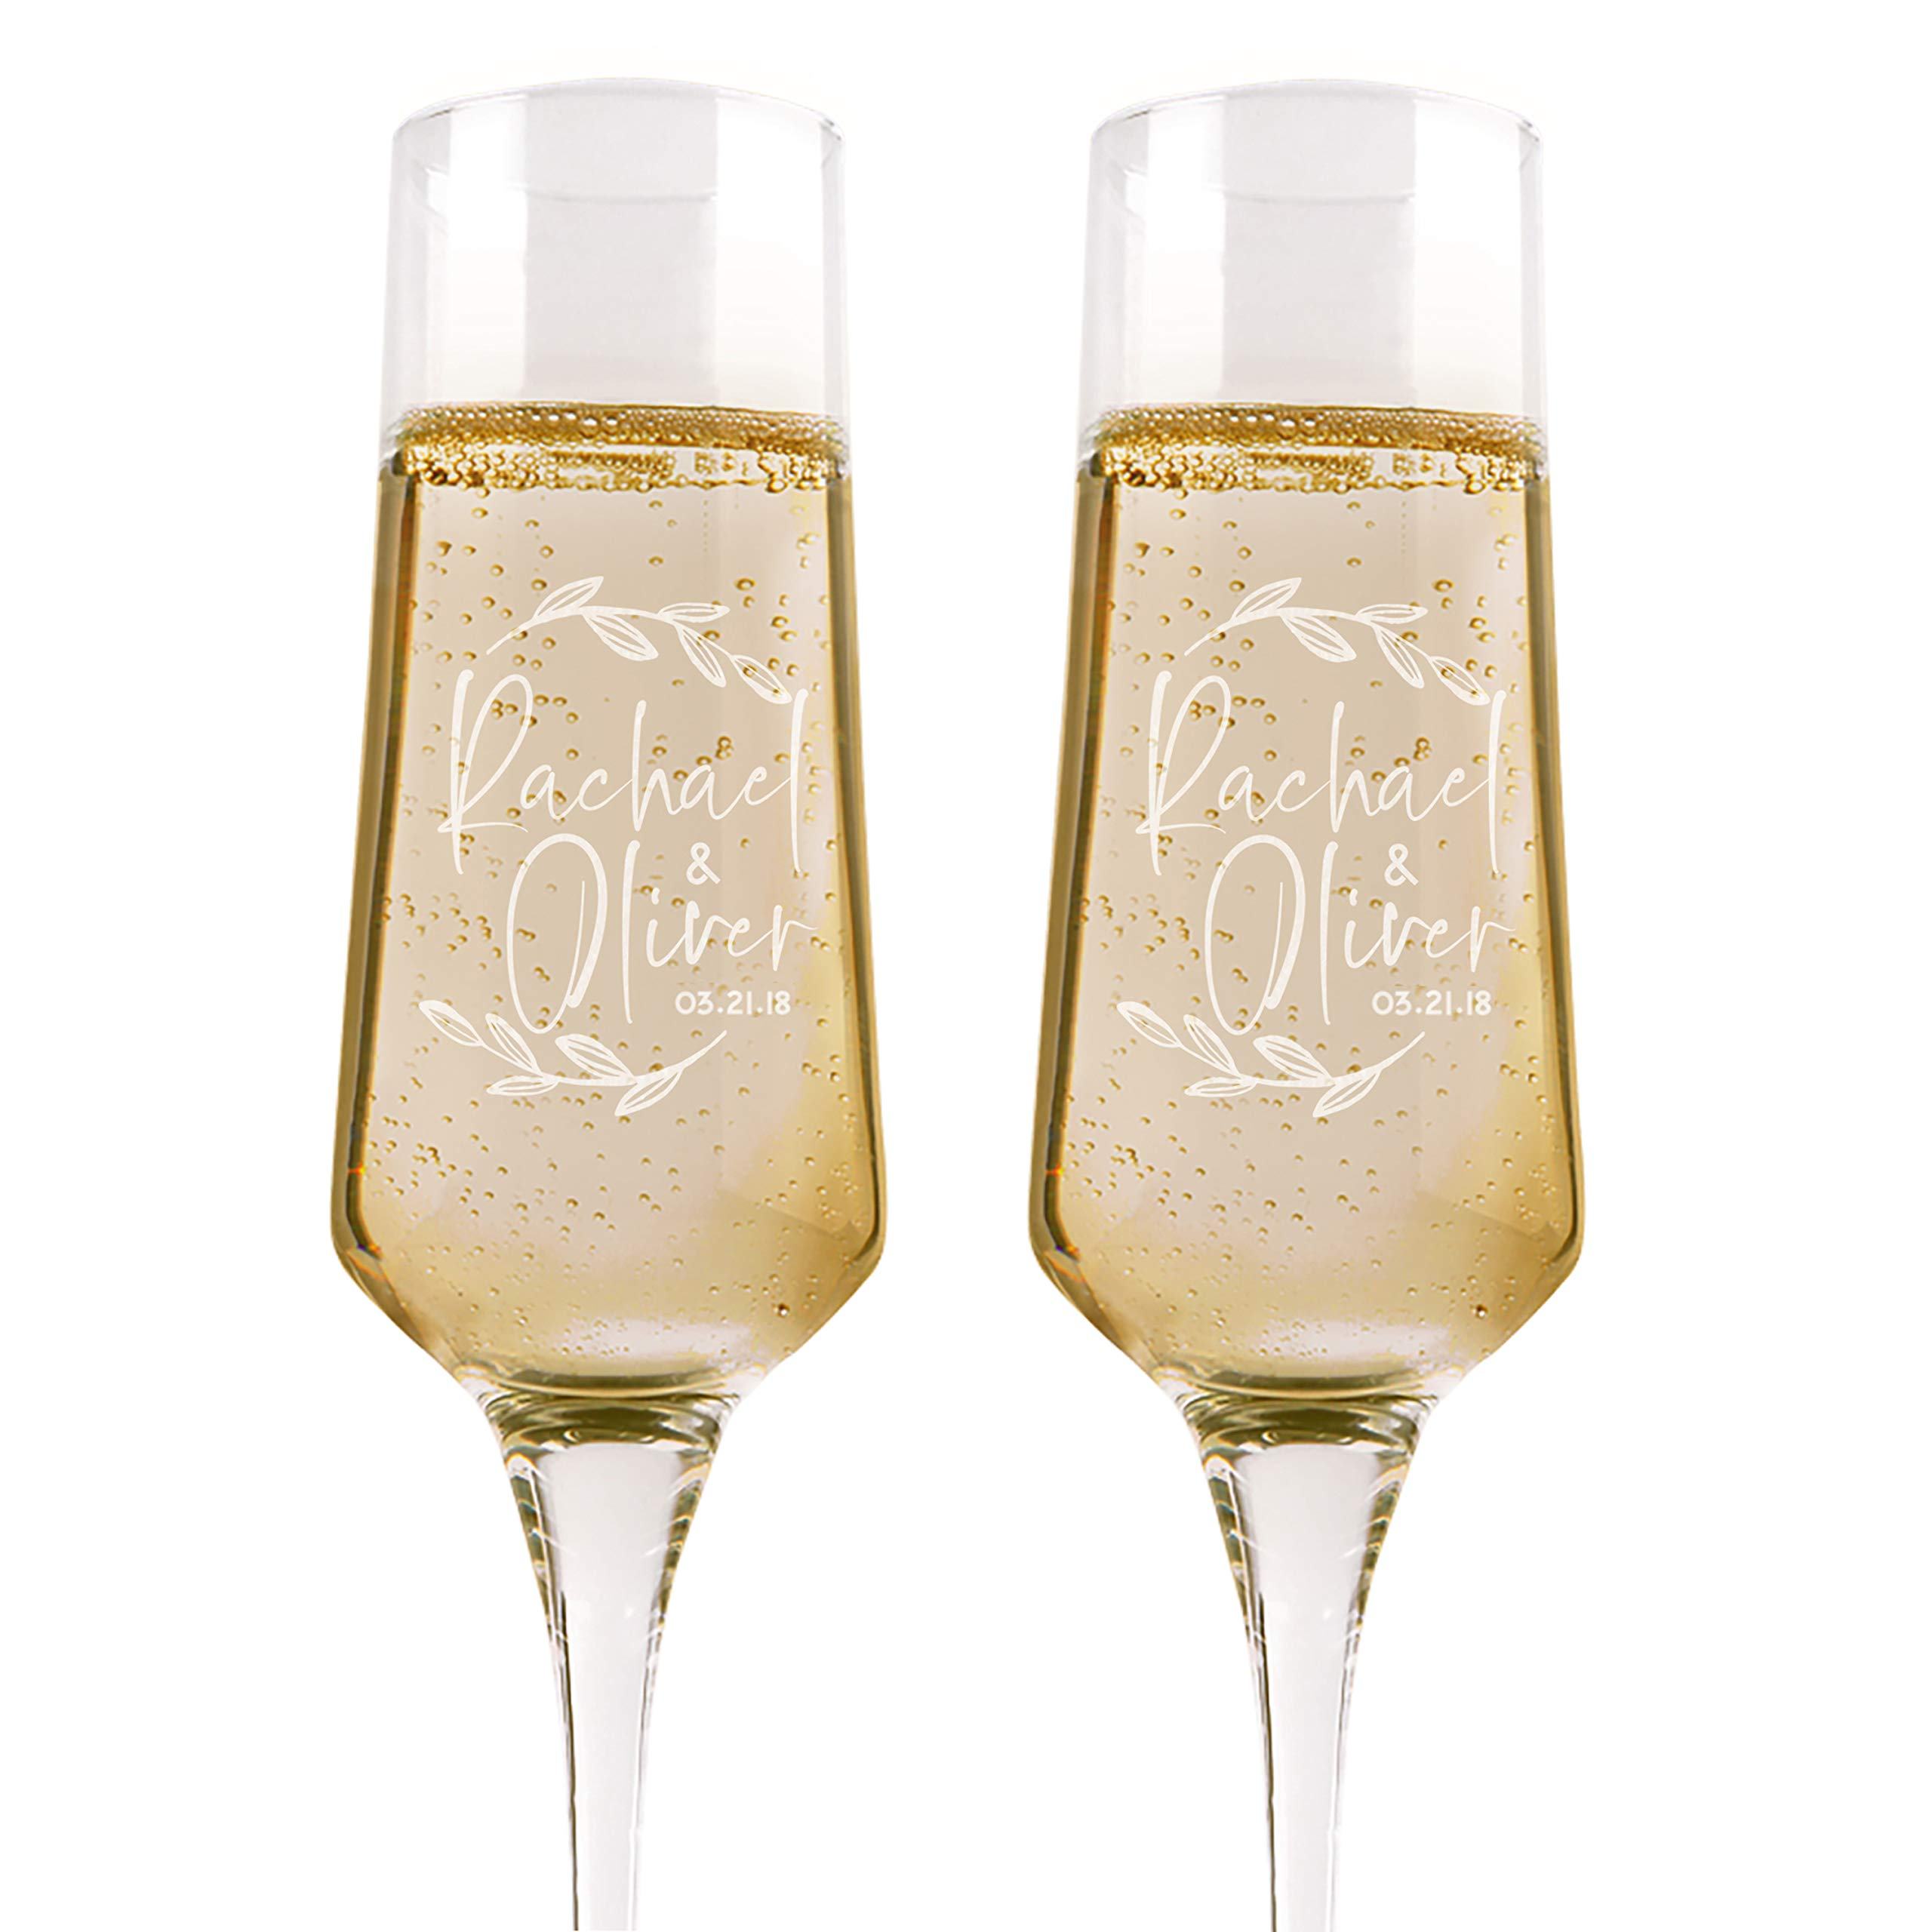 Set of 2, Personalized Wedding Champagne Flutes, Floral, Toasting Glasses for Bride and Groom, Wedding Toast Glasses - Wedding Registry By Brides Name, Wedding Gift